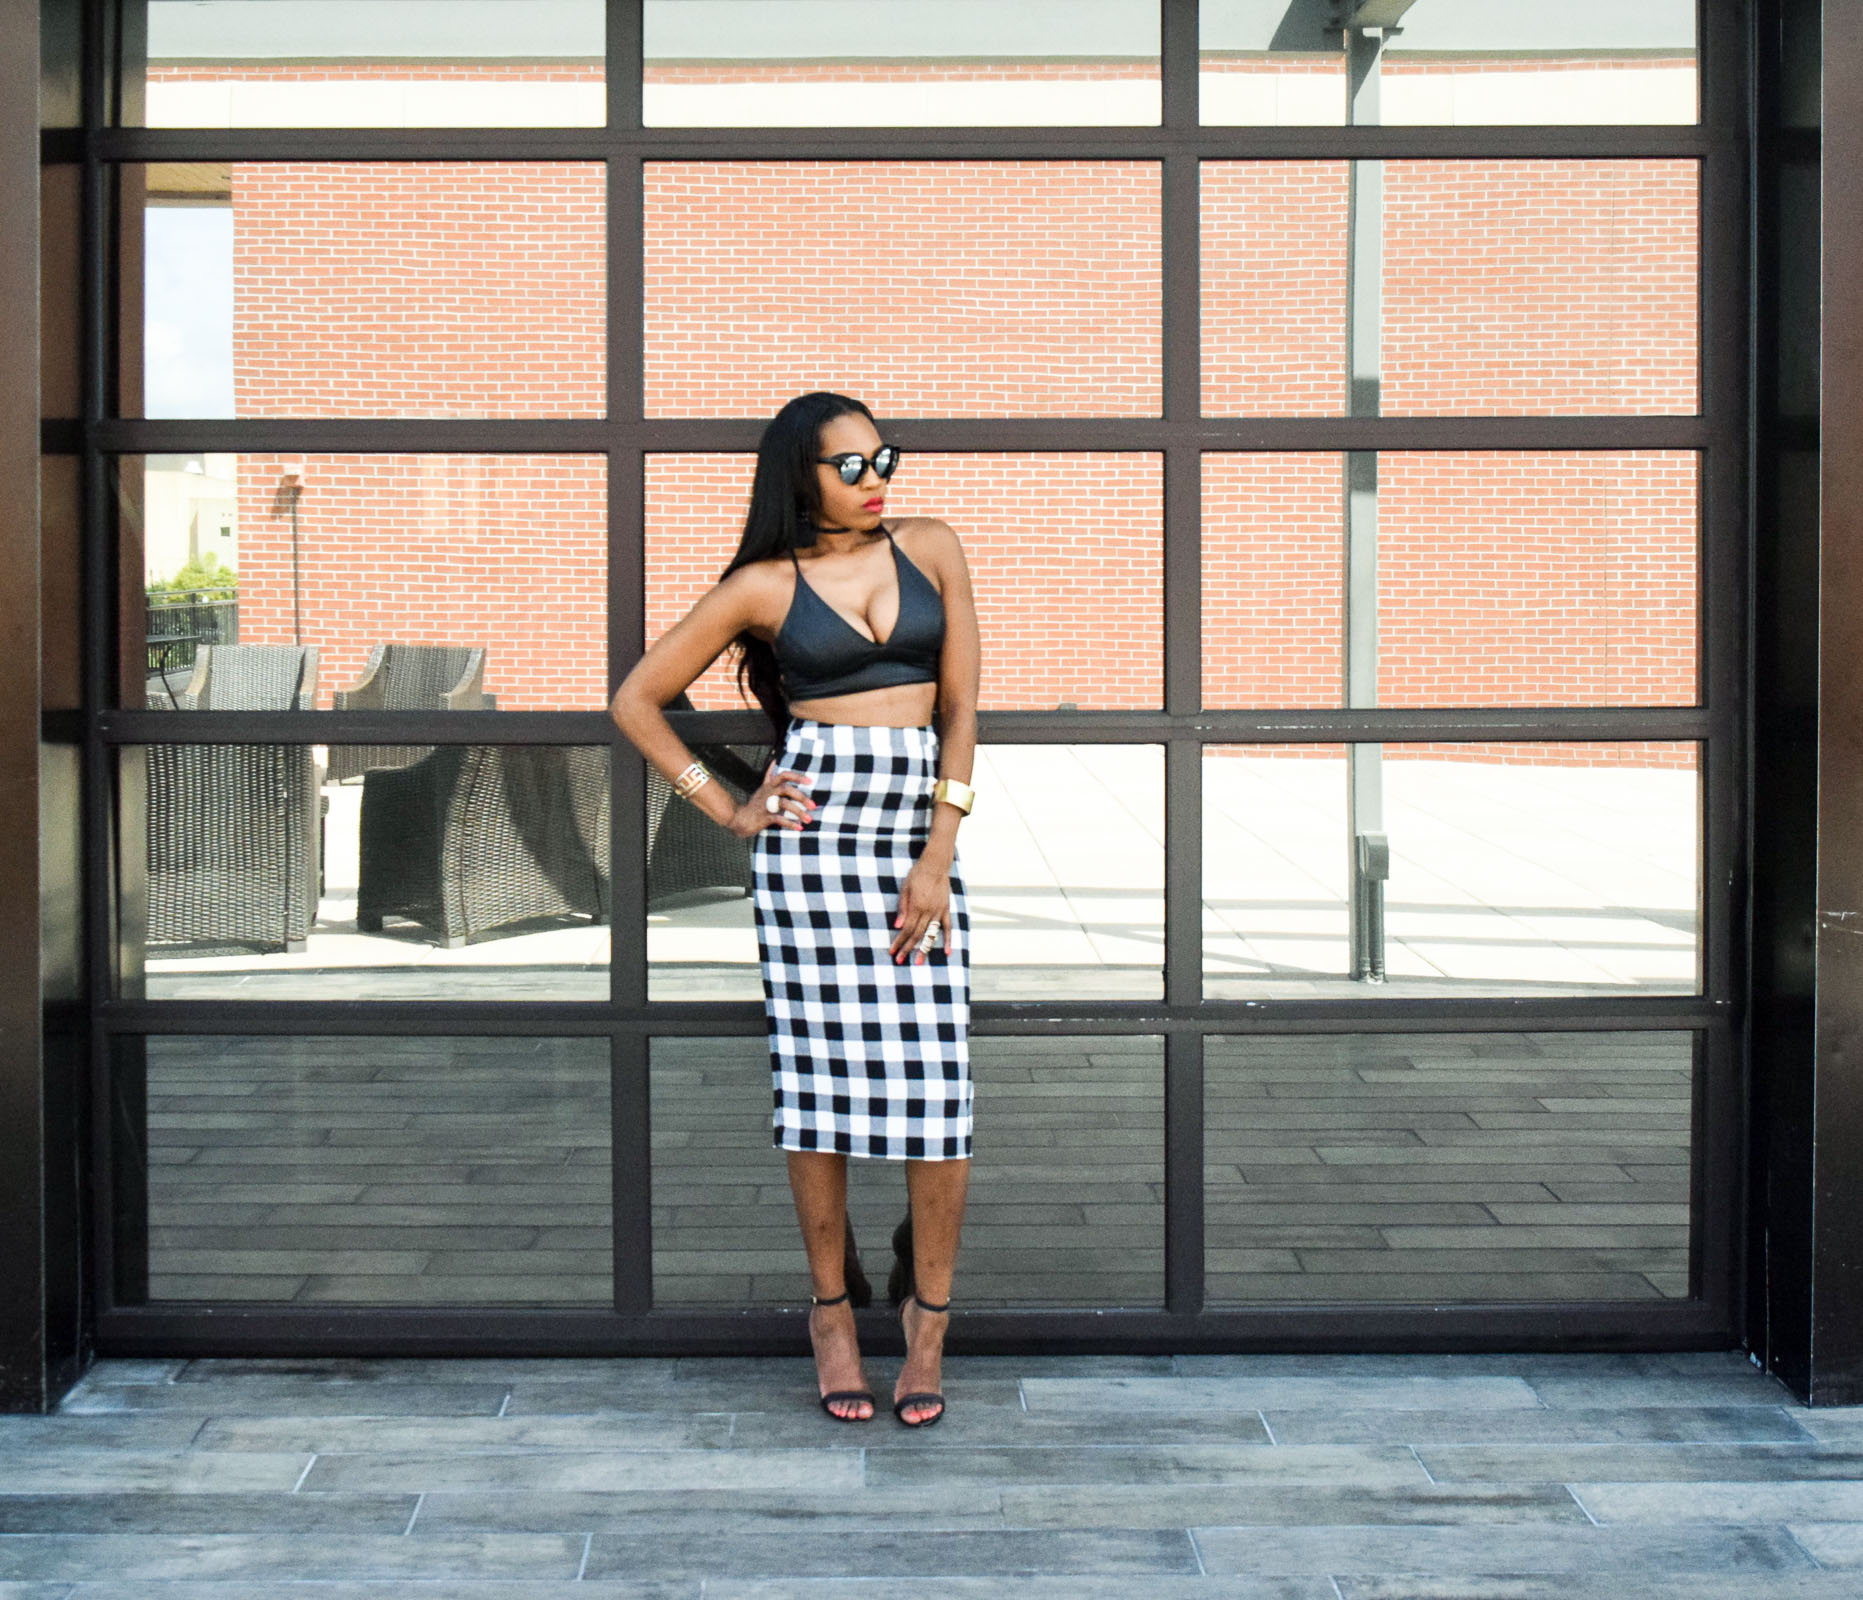 Style-Files-WhoWhatWear-Target-collection-black-white-gingham-pencil-skirt-forever-21-black-leather-bralette-top-justfab-catherina-black-ankle-strap-sandals-Target-Mossimo-vest-who-to-wear-gingham-OohLaLaBlog-13